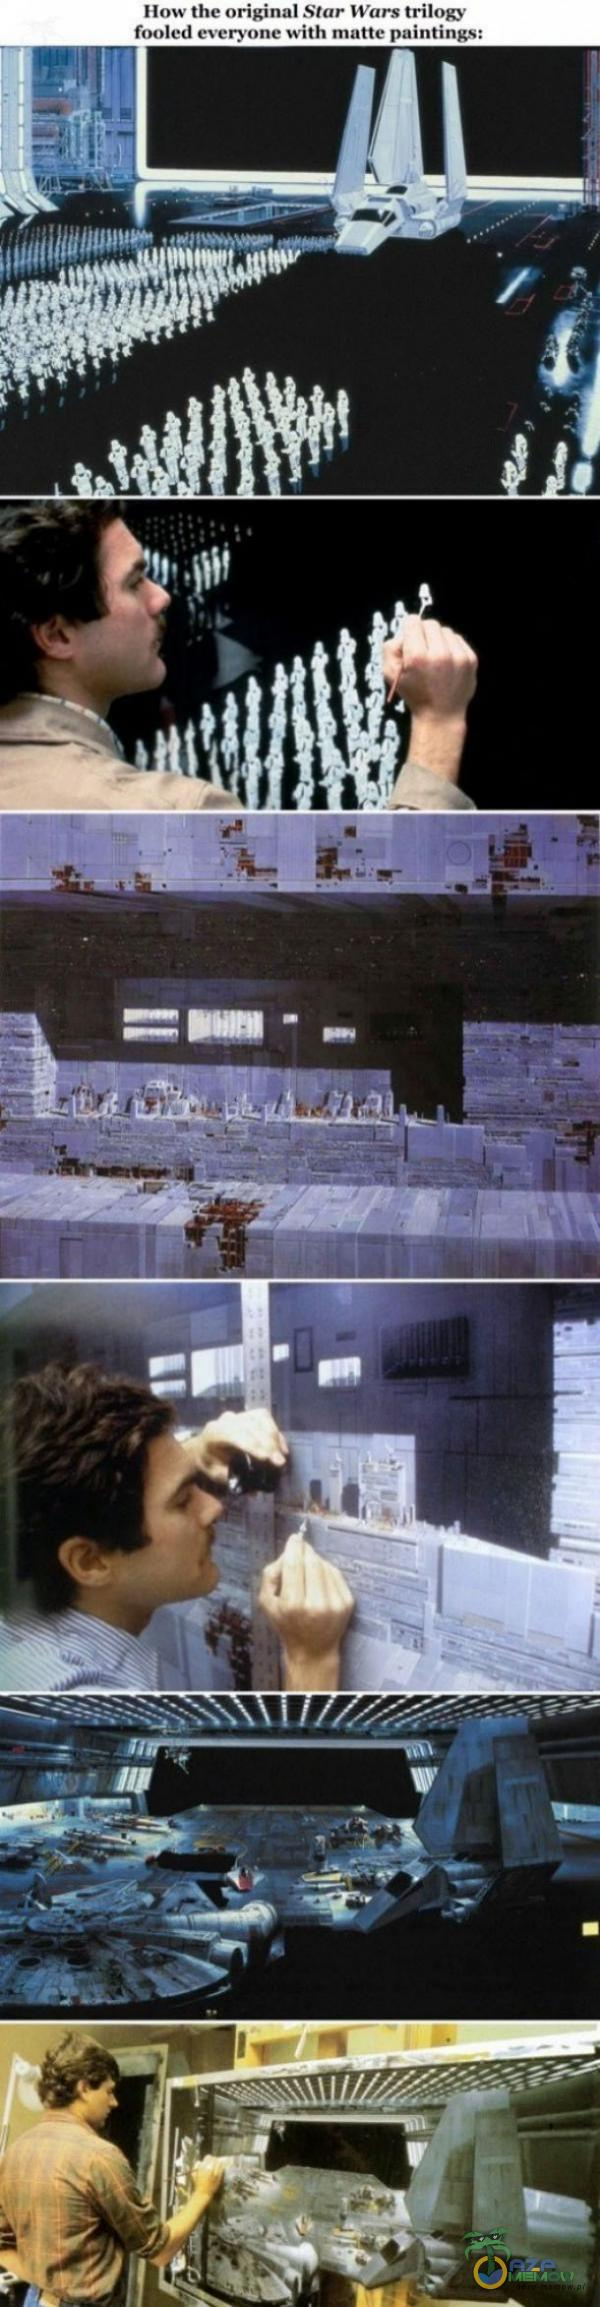 How the original Star Wars trilow fooled everyone with matte paintings: